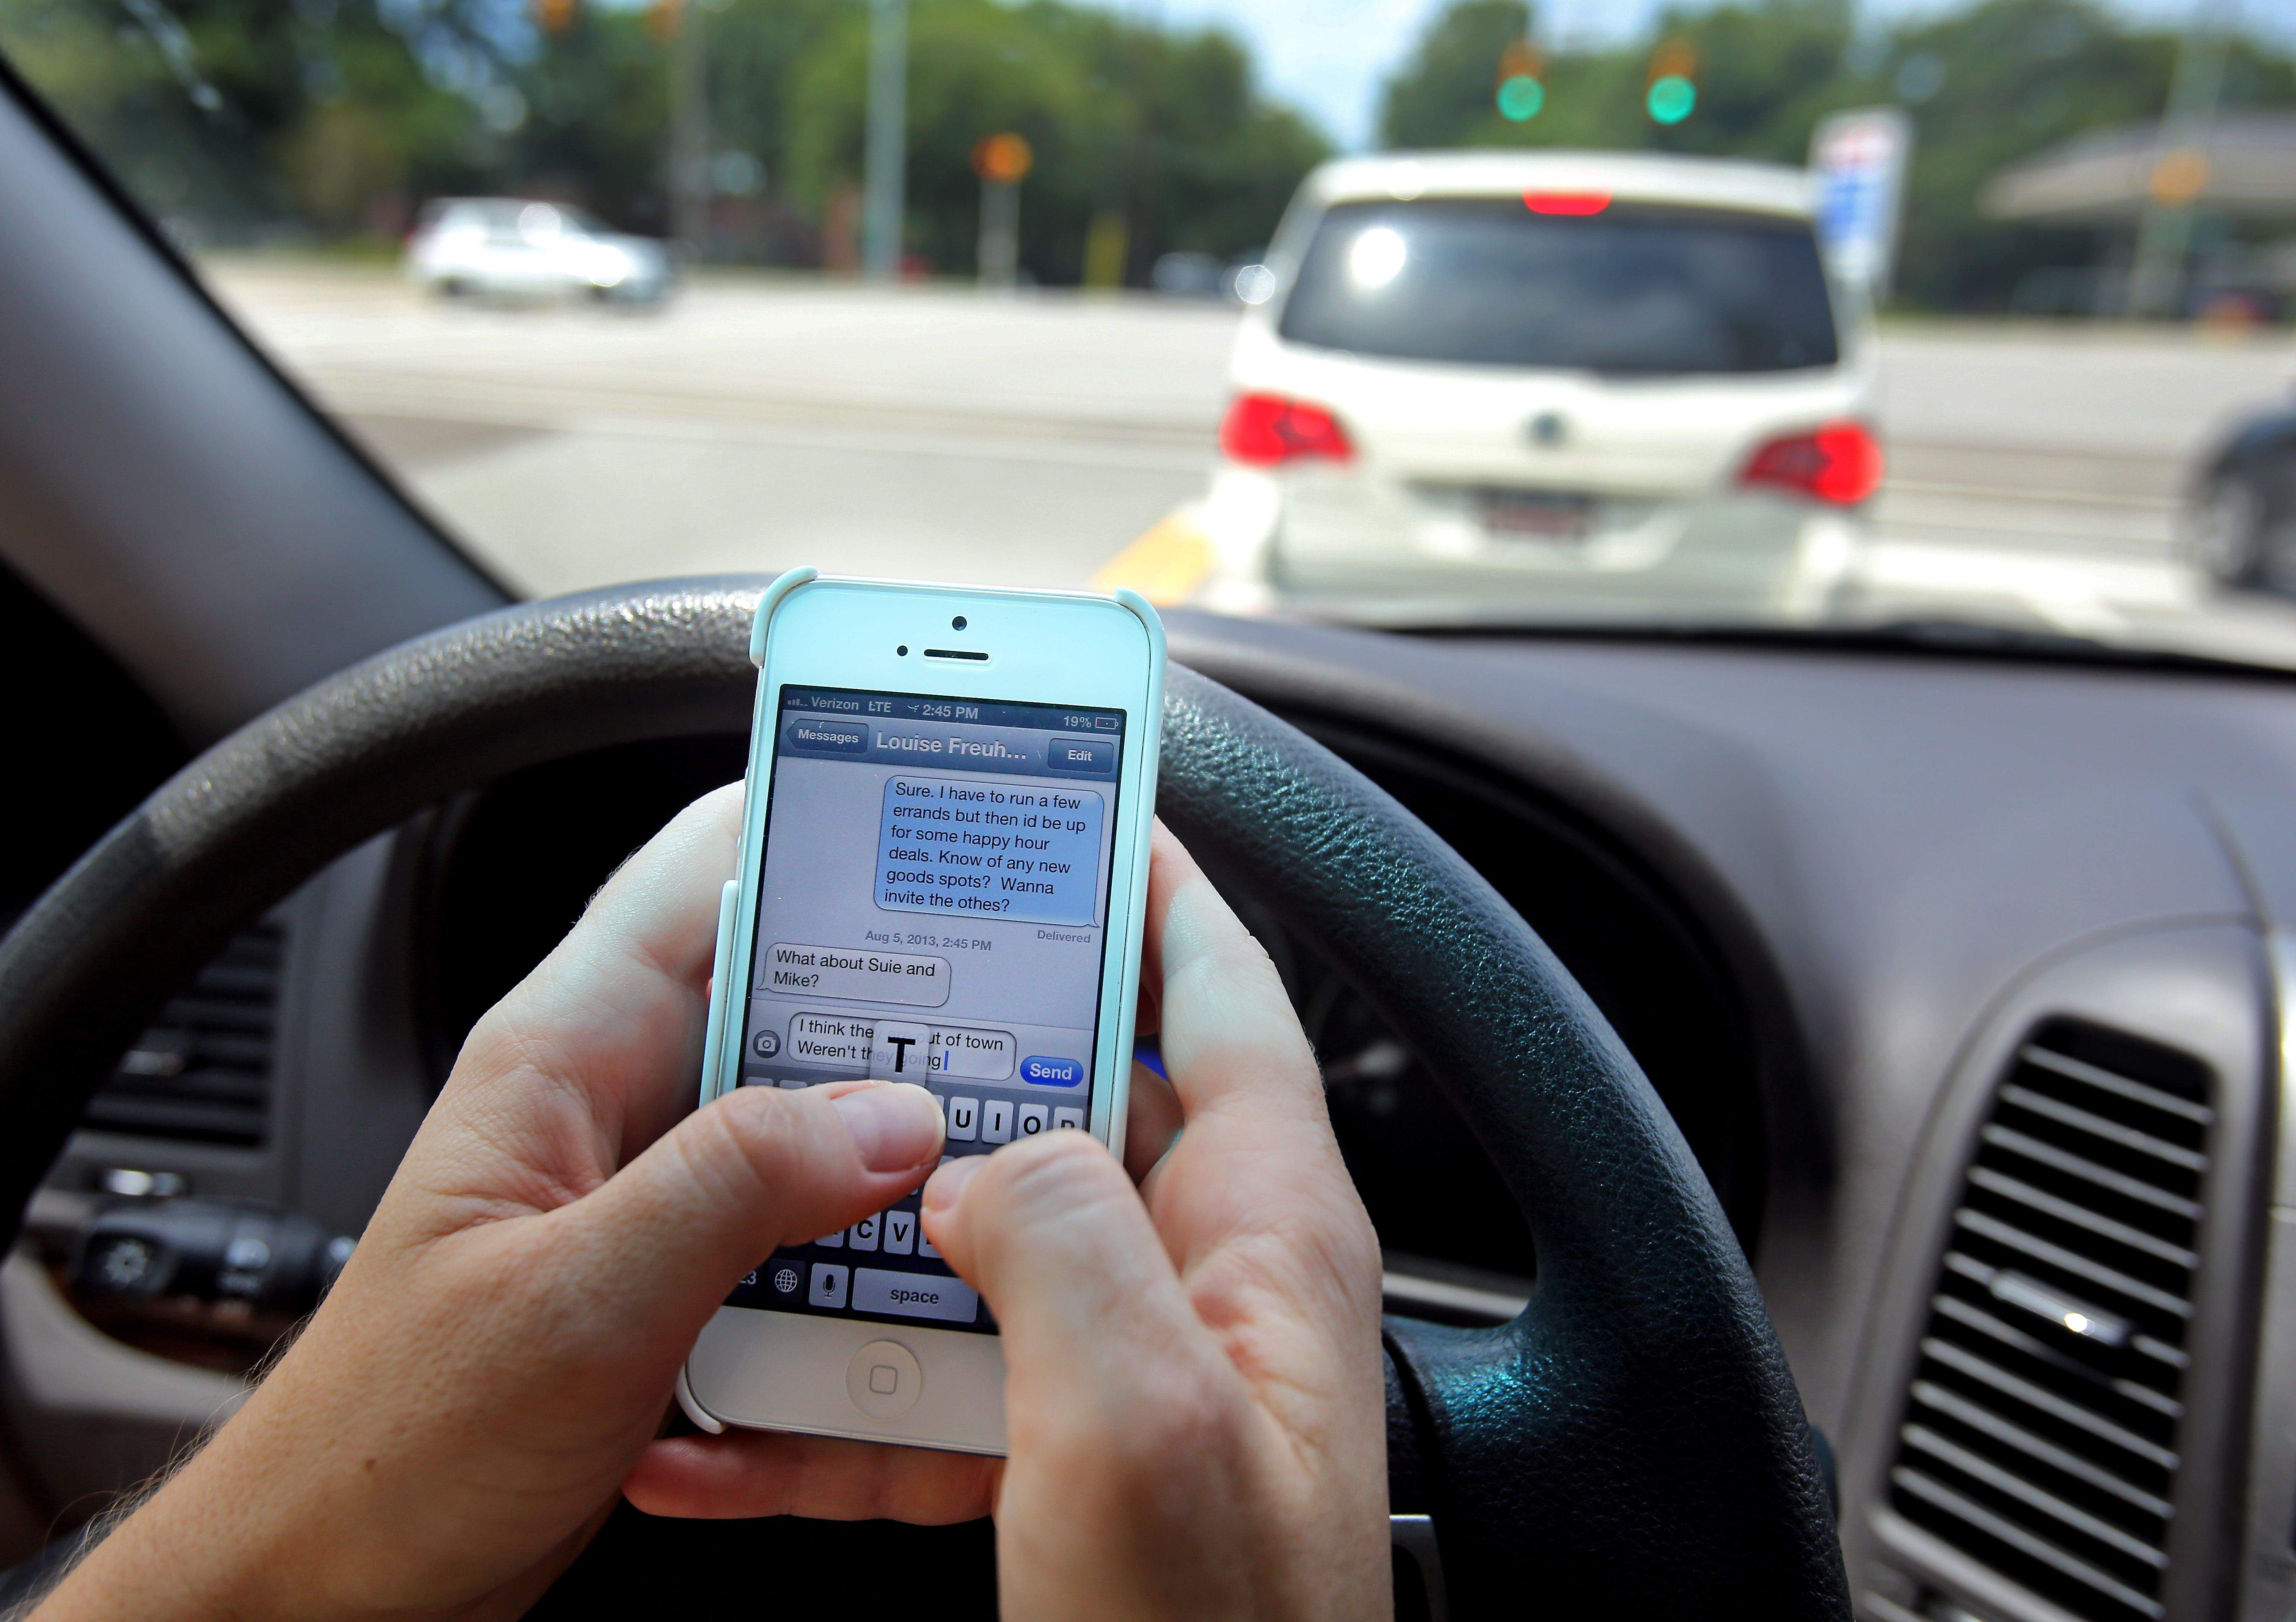 Tougher texting while driving ban moves in House